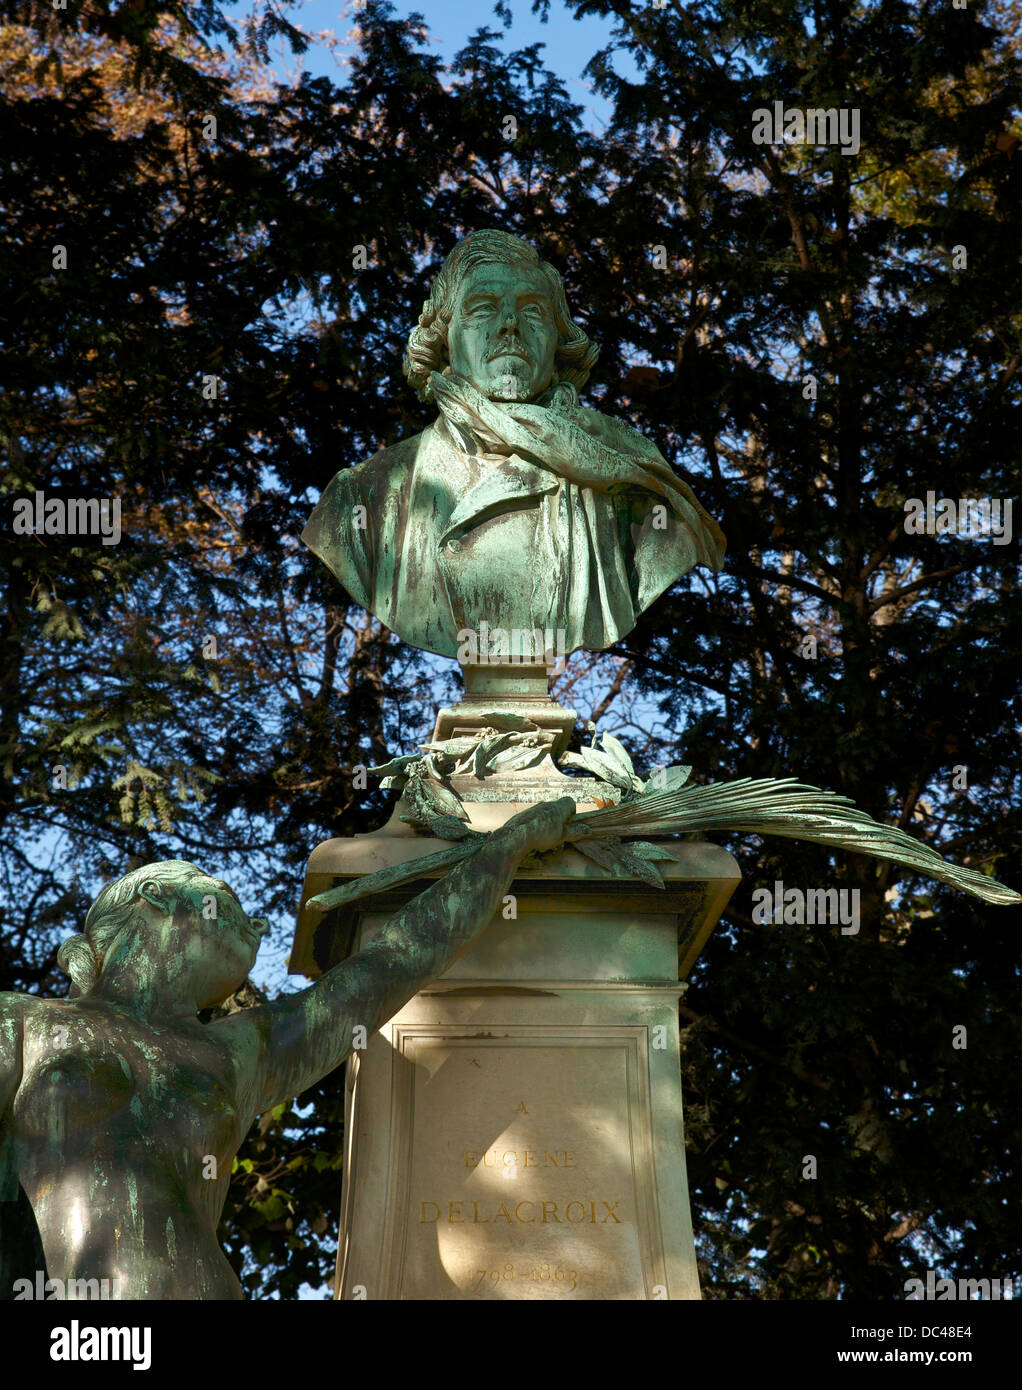 Detail of the monument to Eugène Delacroix (1798-1863): the bust of the painter Stock Photo